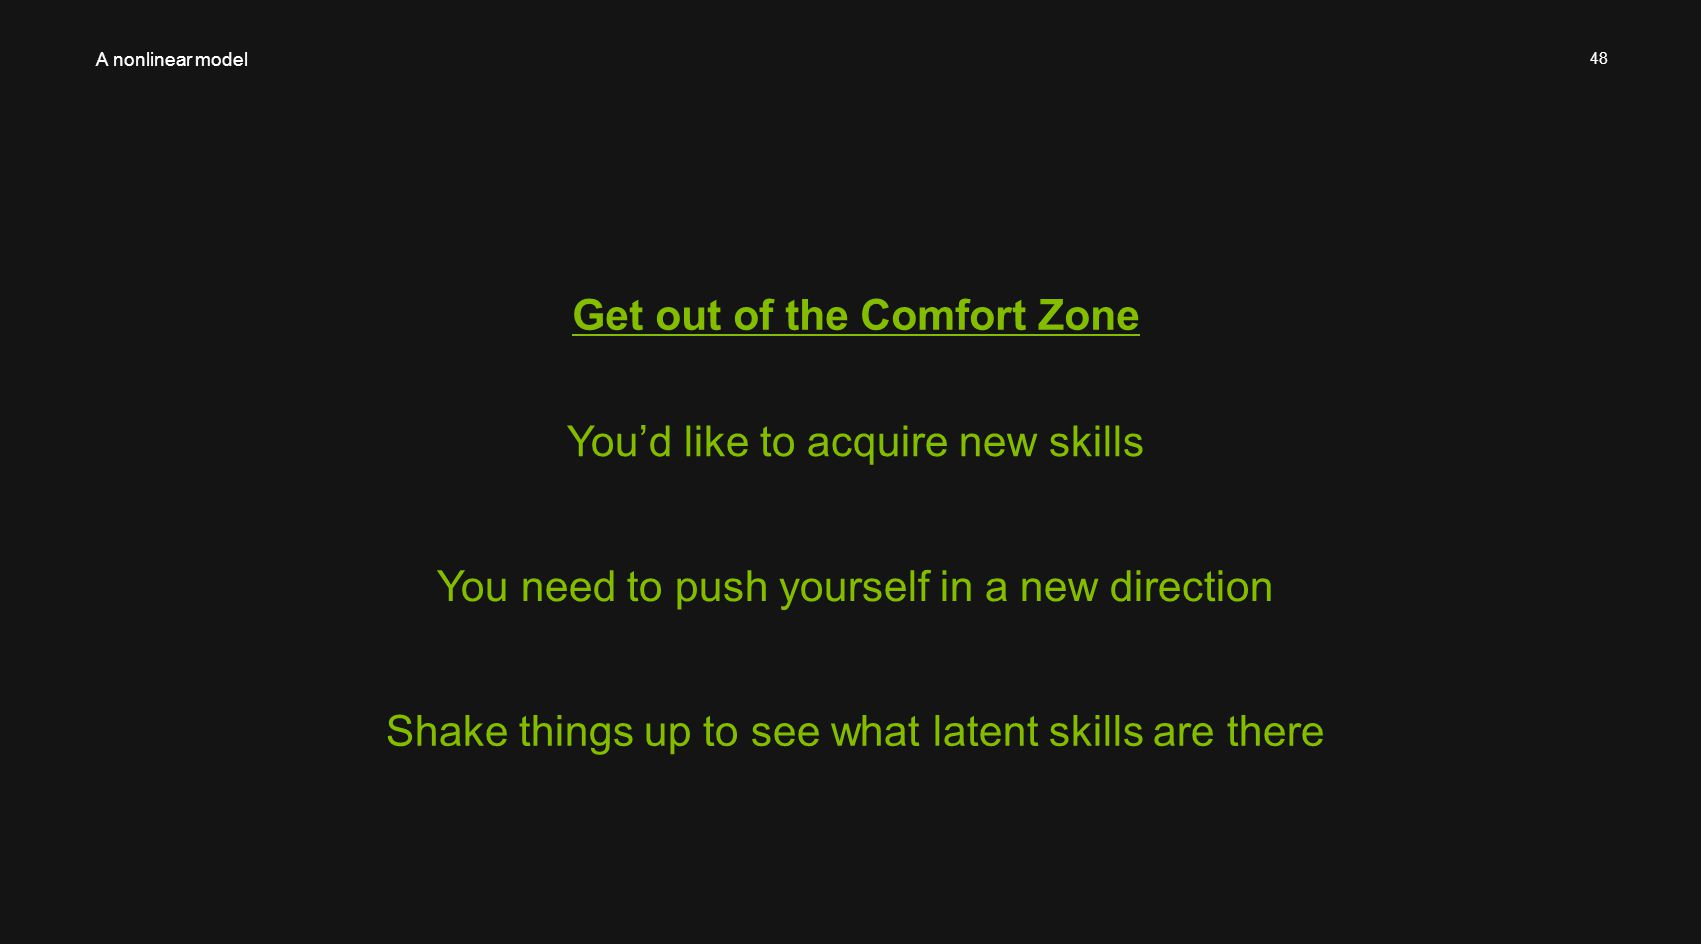 48 Get out of the Comfort Zone A nonlinear model You'd like to acquire new skills You need to push yourself in a new direction Shake things up to see what latent skills are there